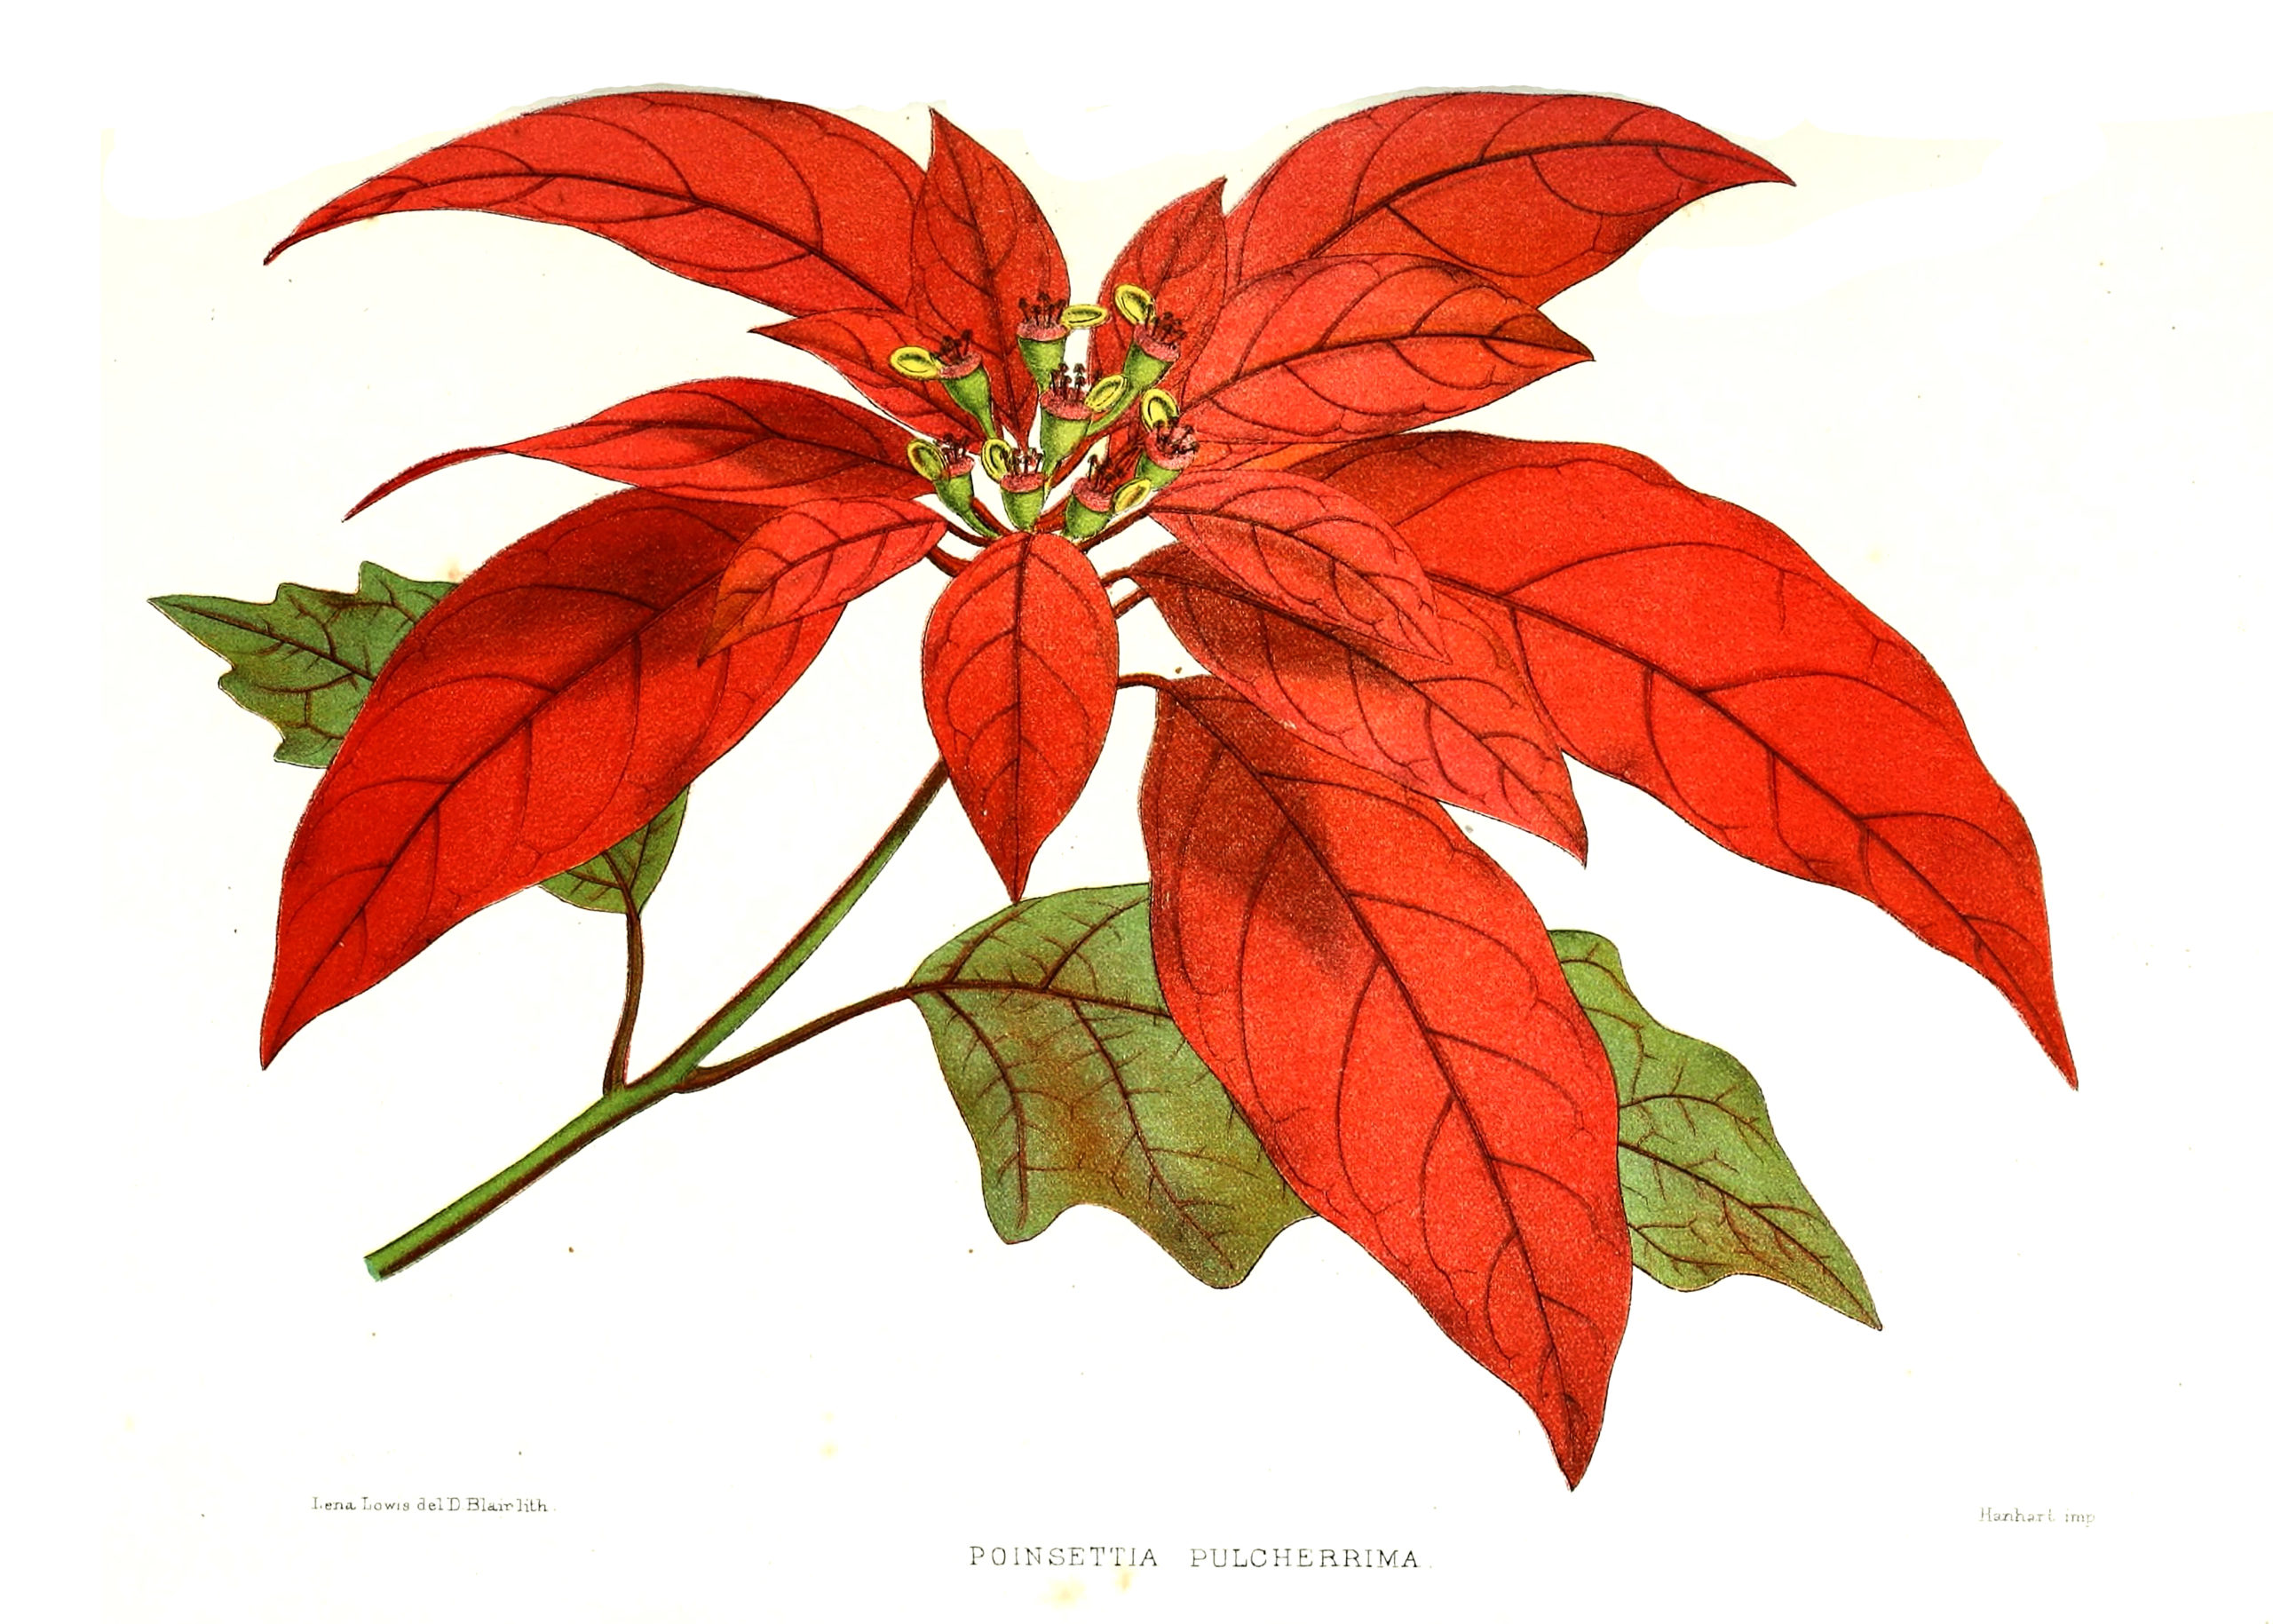 Vintage Botanical Prints - 18 in a series - Vintage Poinsettia pulcherrima Botanical Print from the Biodiversity Heritage Library (1878)